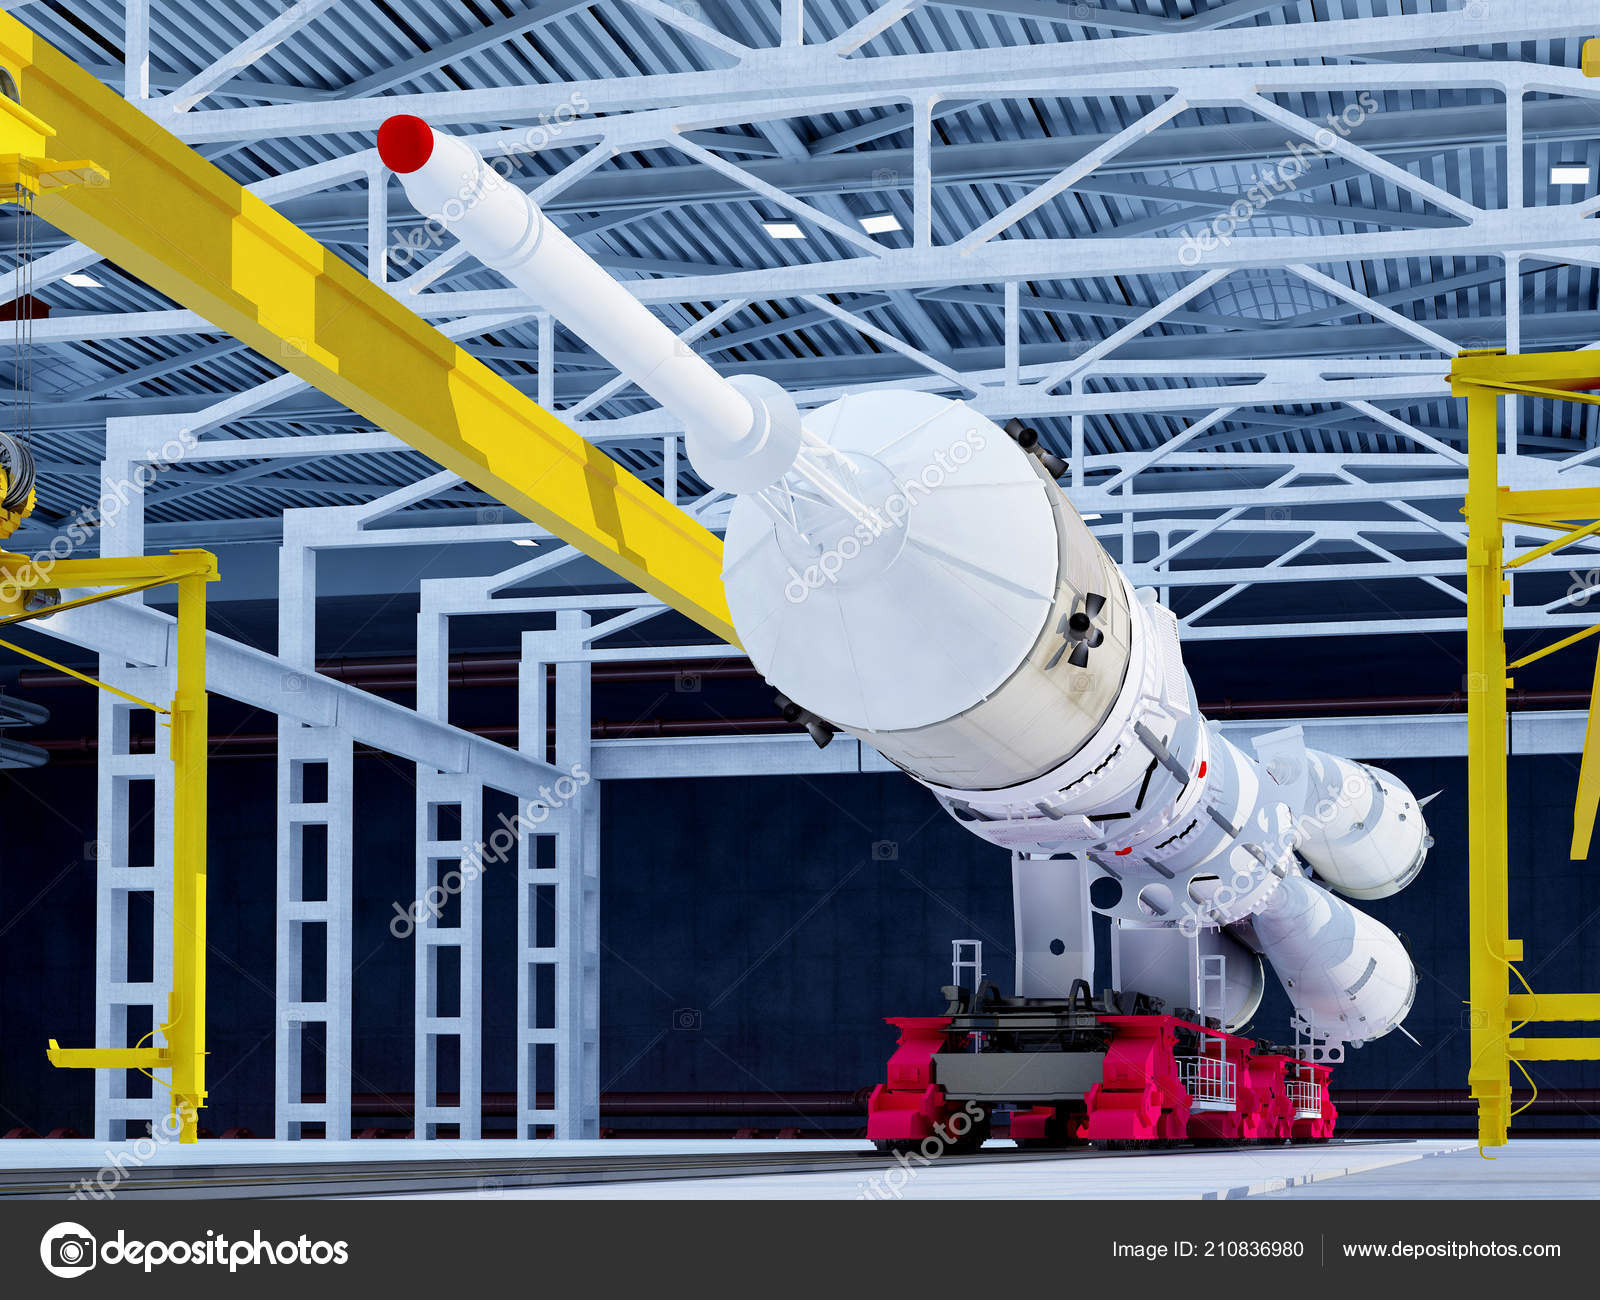 Space Rocket Hangar Render — Stock Photo © Iurii #210836980